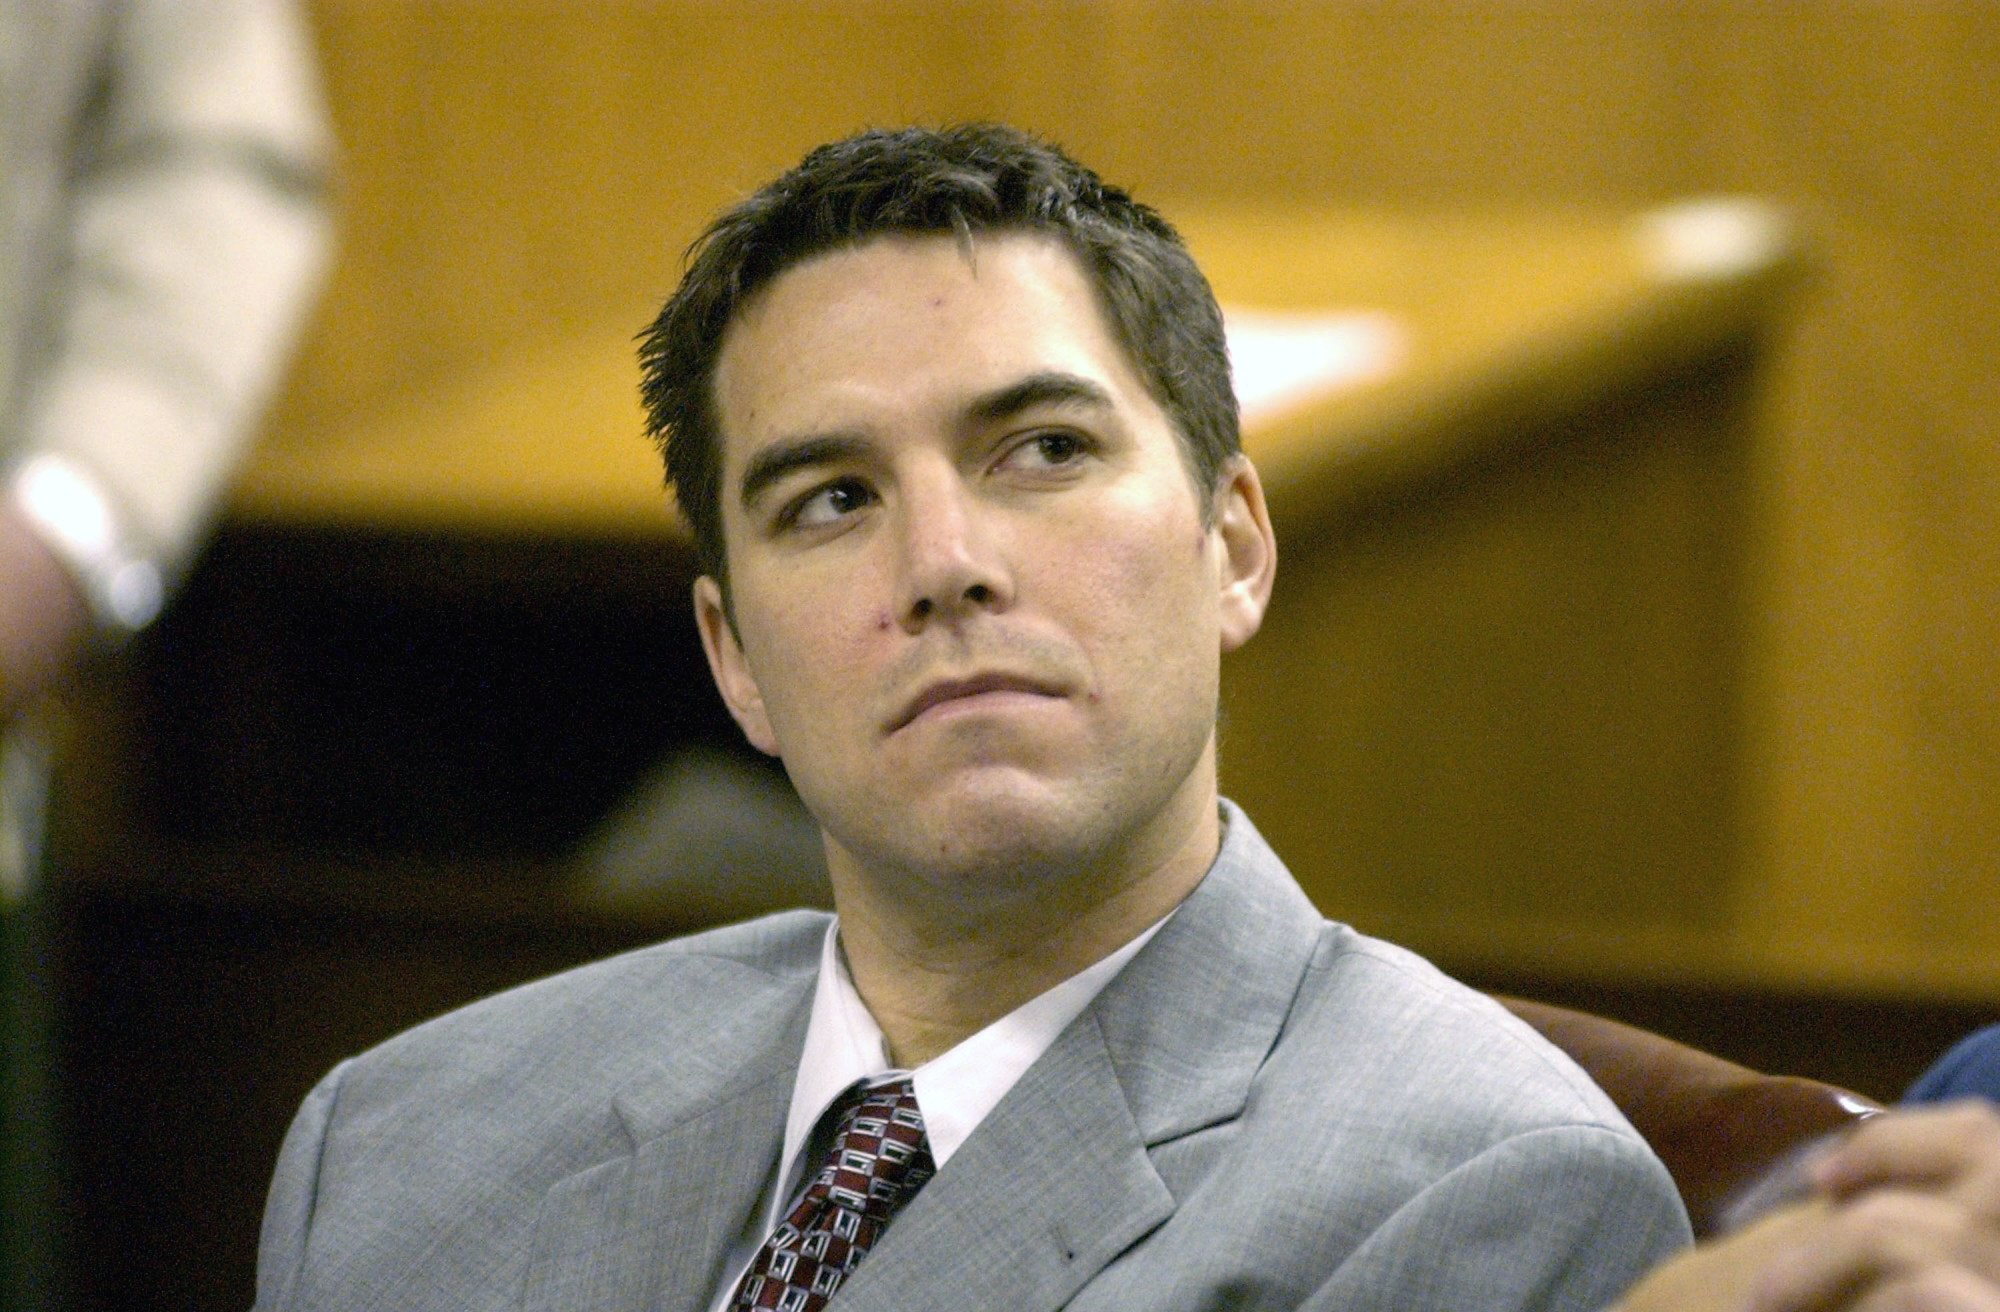 Scott Peterson listens to prosecutor Joseph Distaso respond to defense attorney Mark Geragos' petition for dismissing double murder charges against Peterson January 14, 2004 in Modesto, California. (Bart Ah You-Pool/Getty Images)